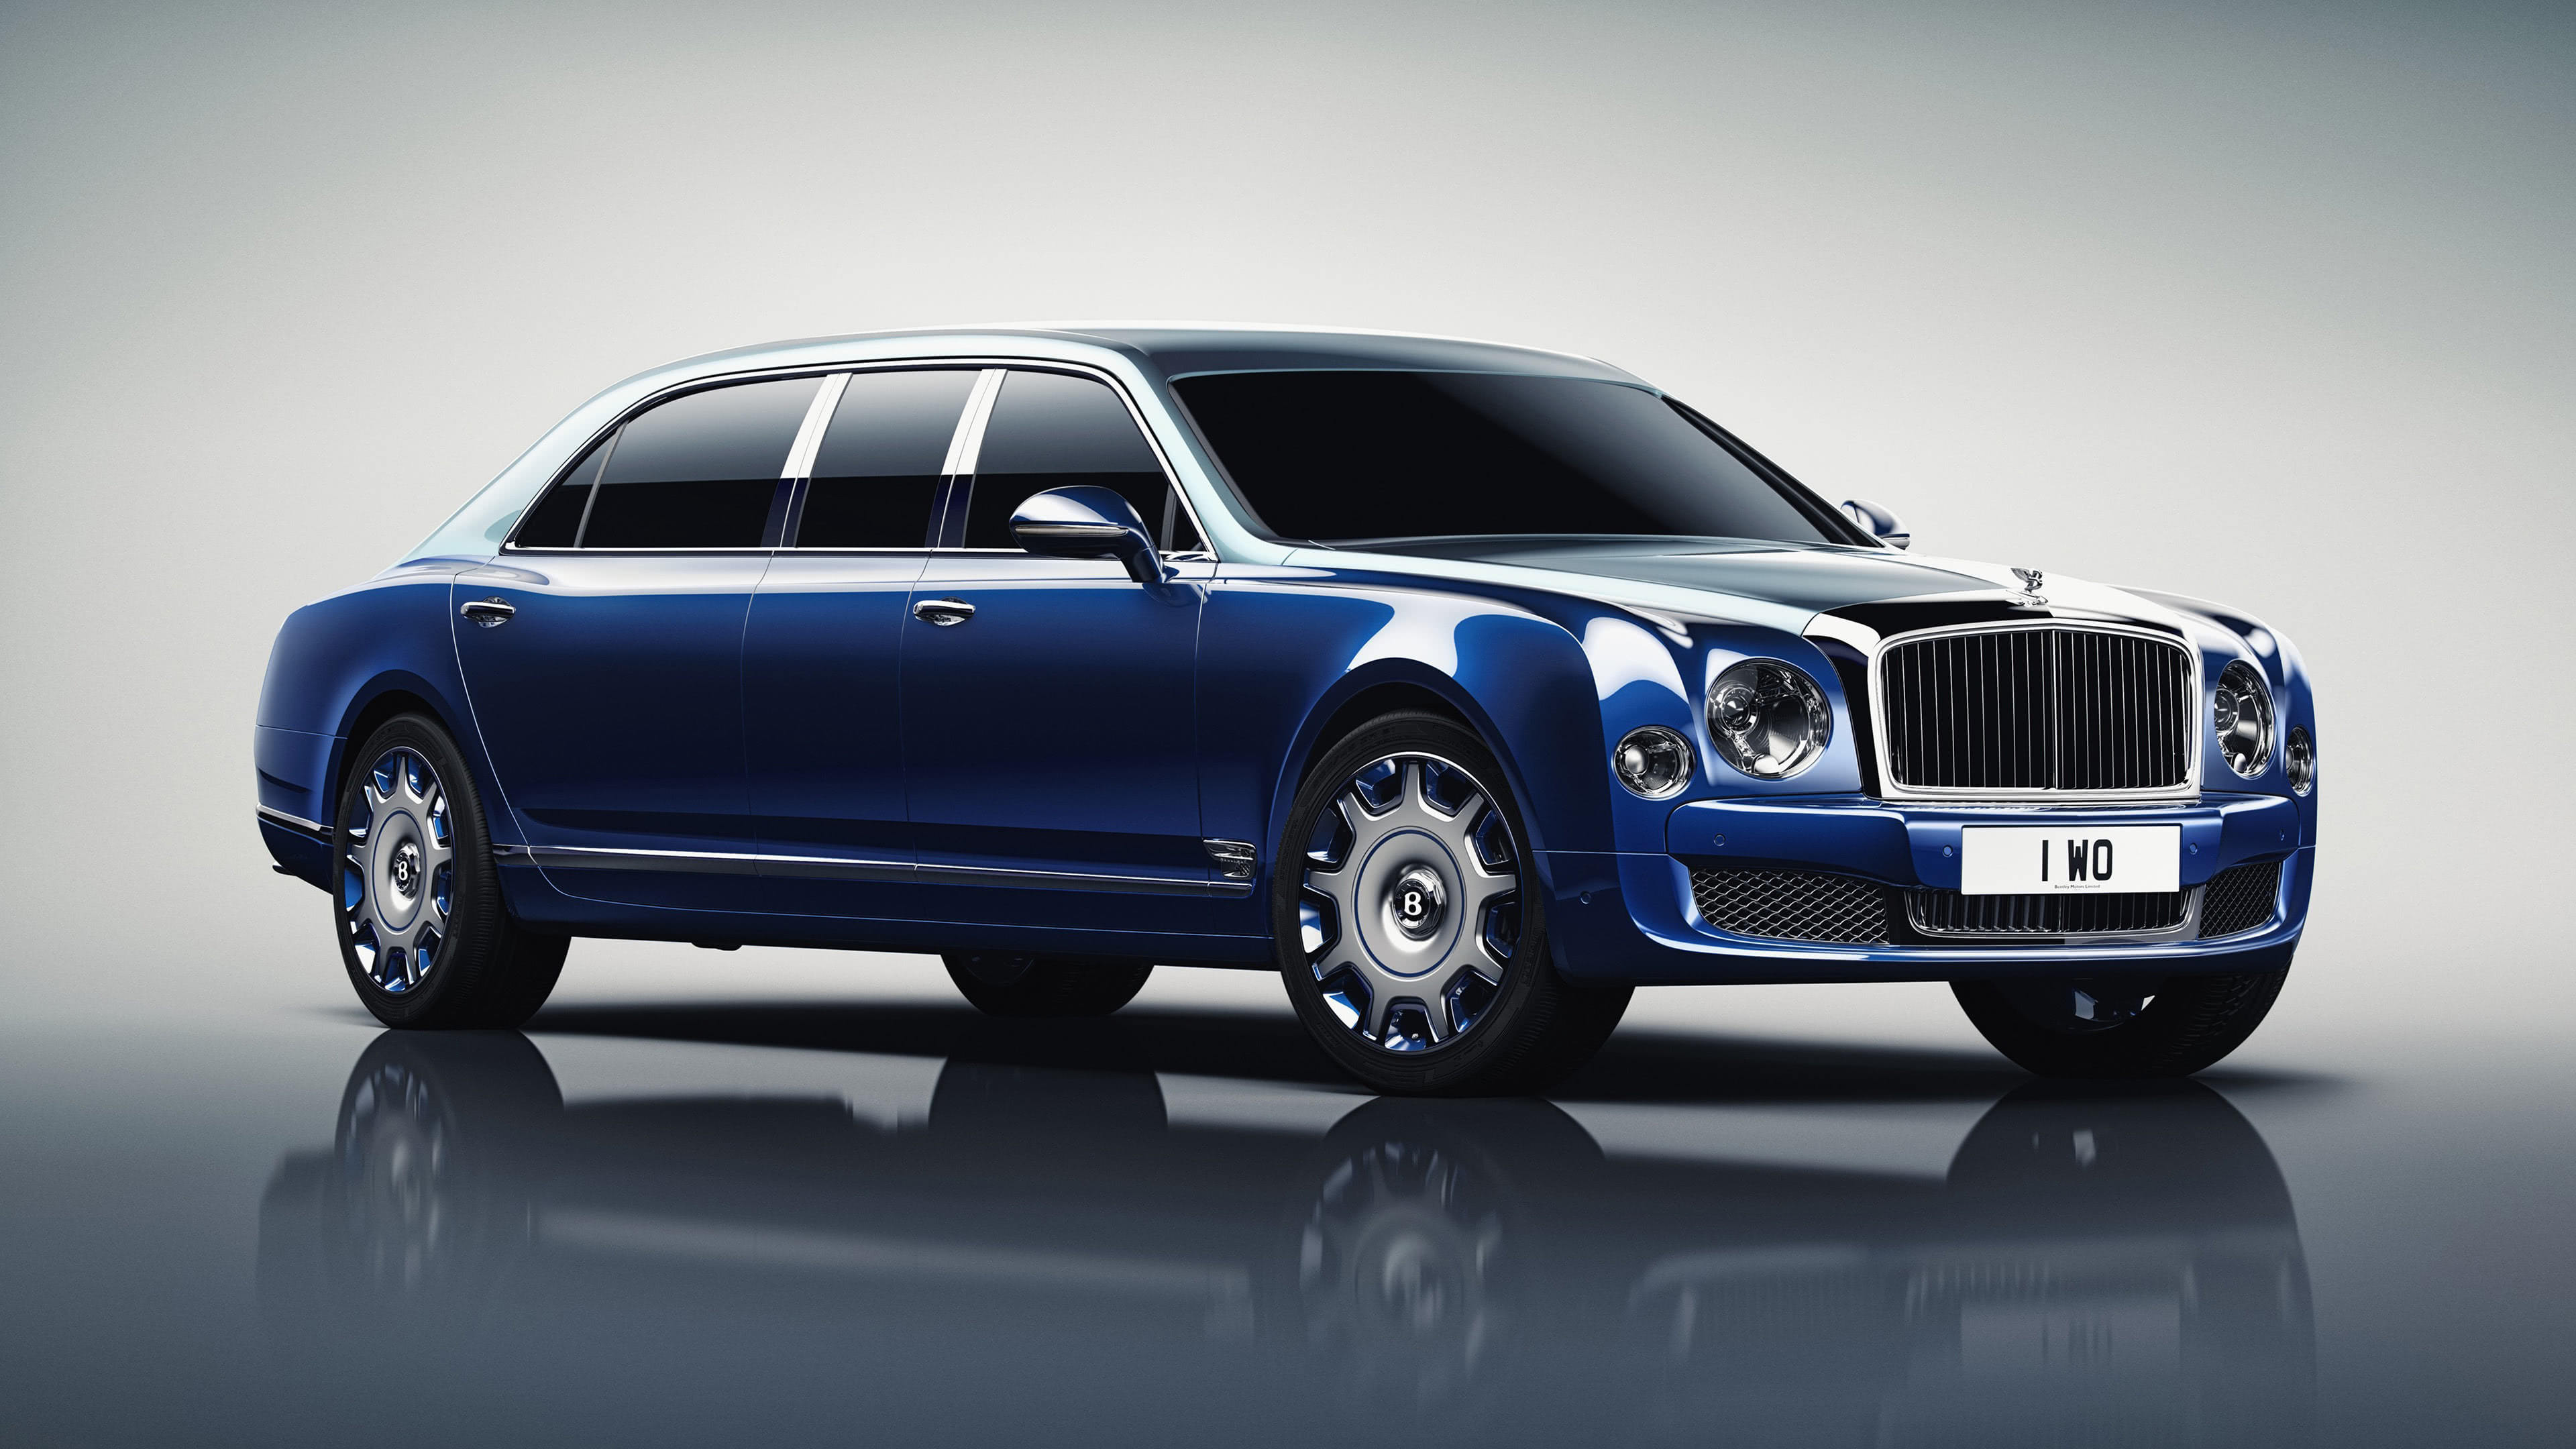 Bentley Mulsanne Grand Limousine UHD 4K Wallpaper Pixelz 3840x2160